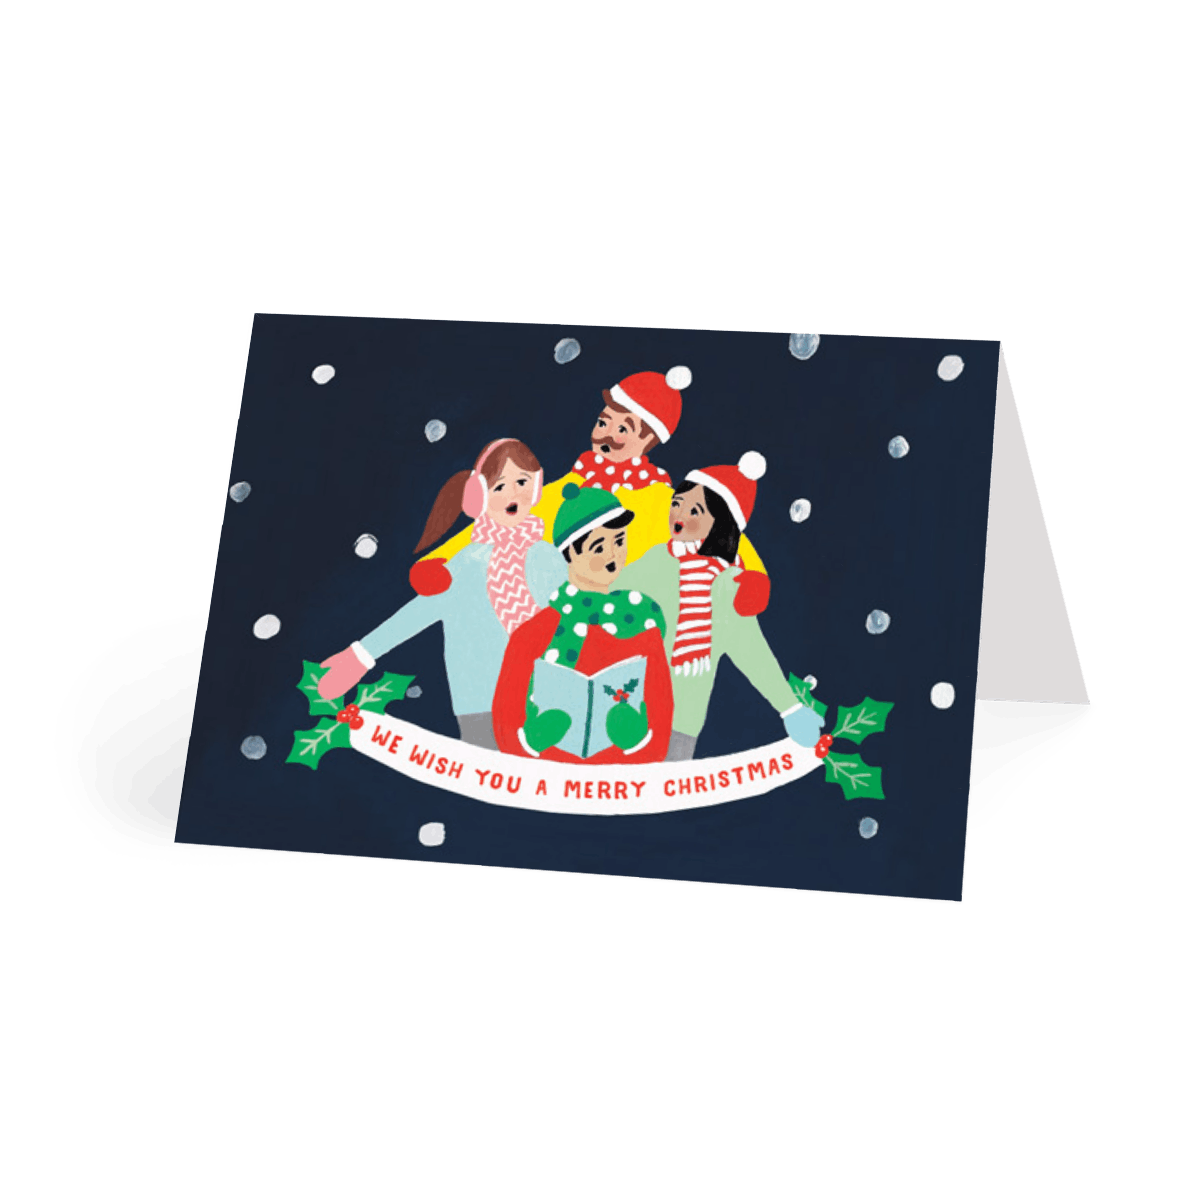 Https%3a%2f%2fwww.papier.com%2fproduct image%2f10515%2f14%2fchristmas carolers 2680 front 1568227635.png?ixlib=rb 1.1